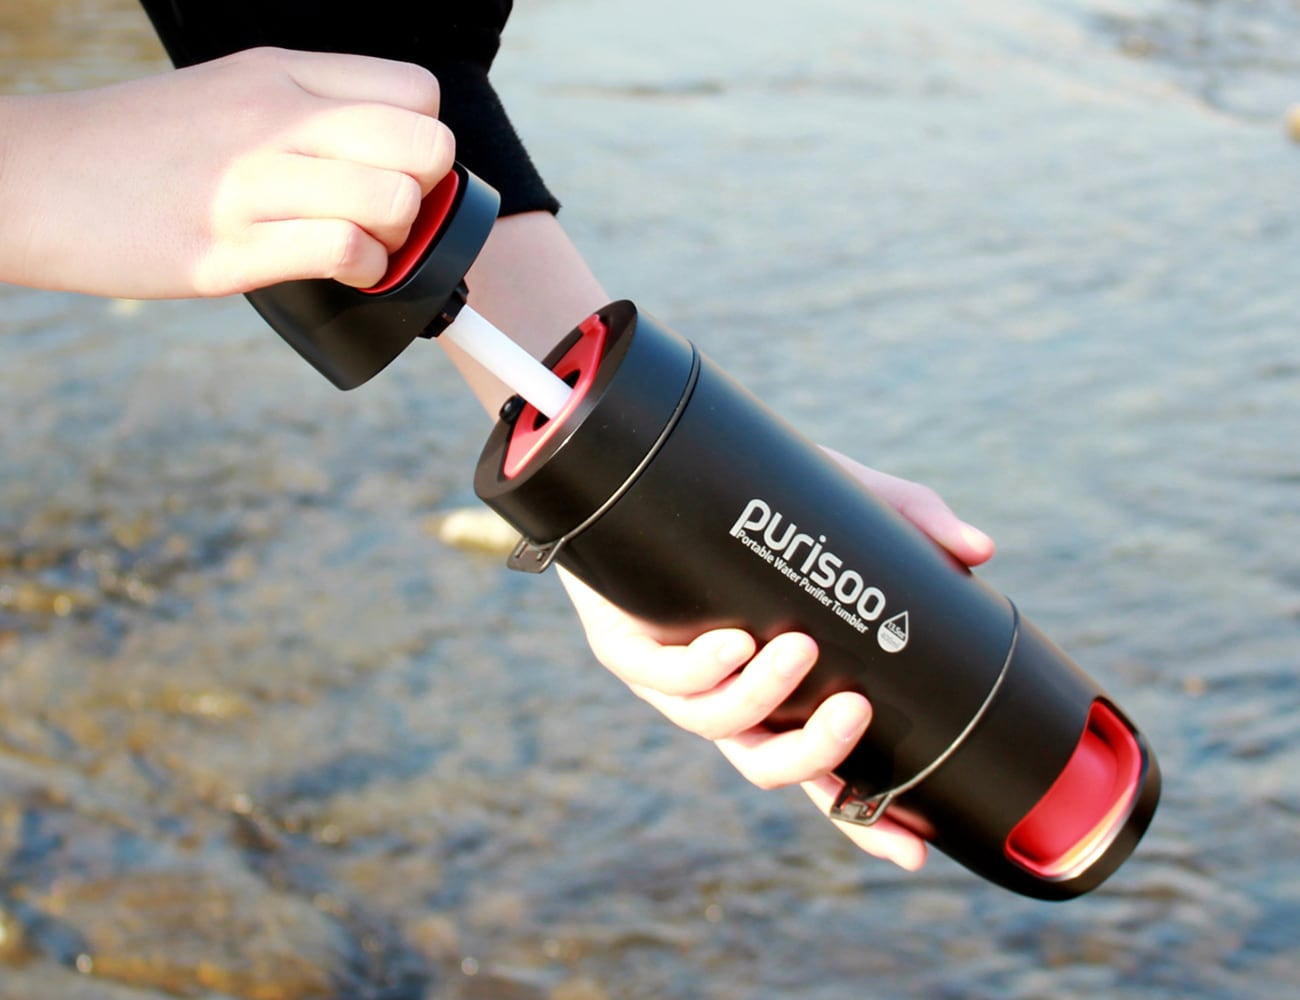 Purisoo Portable Water Purifier Bottle